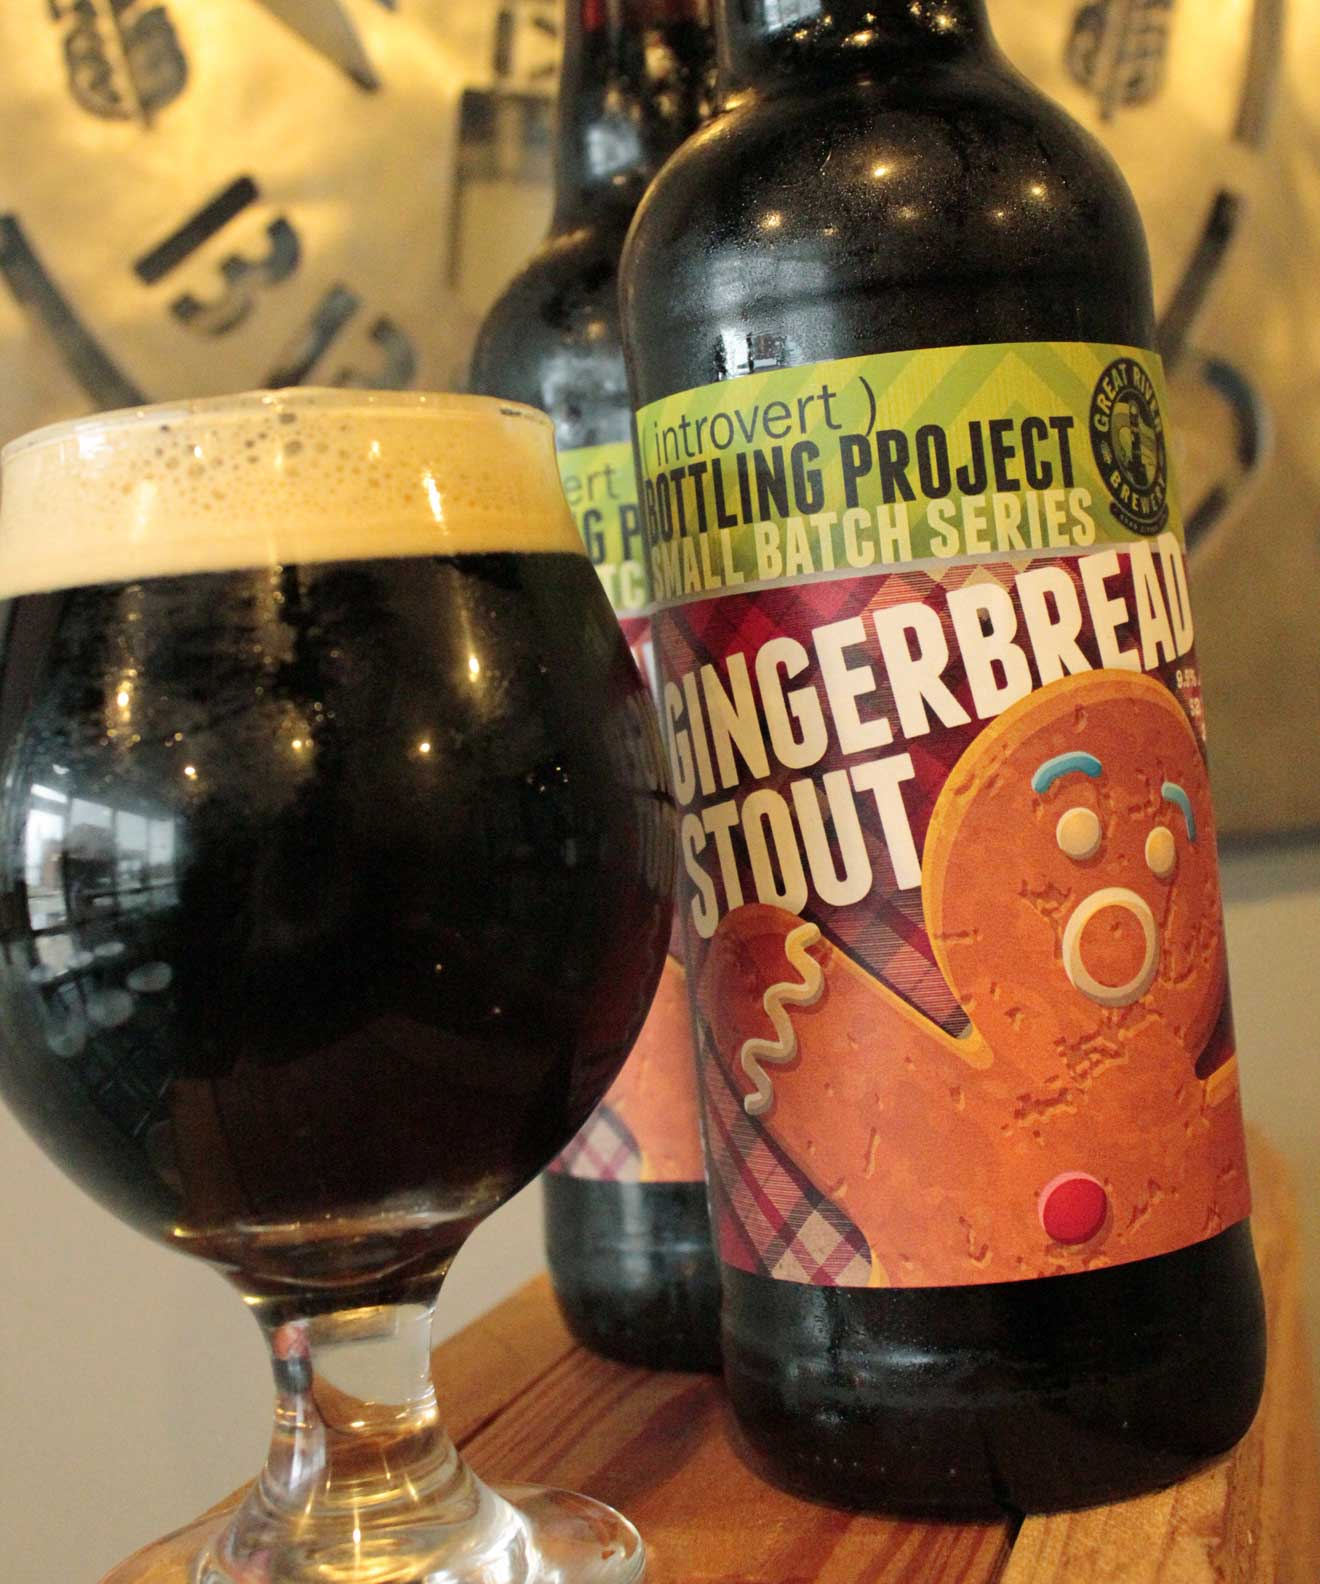 Great River Brewery Gingerbread Stout